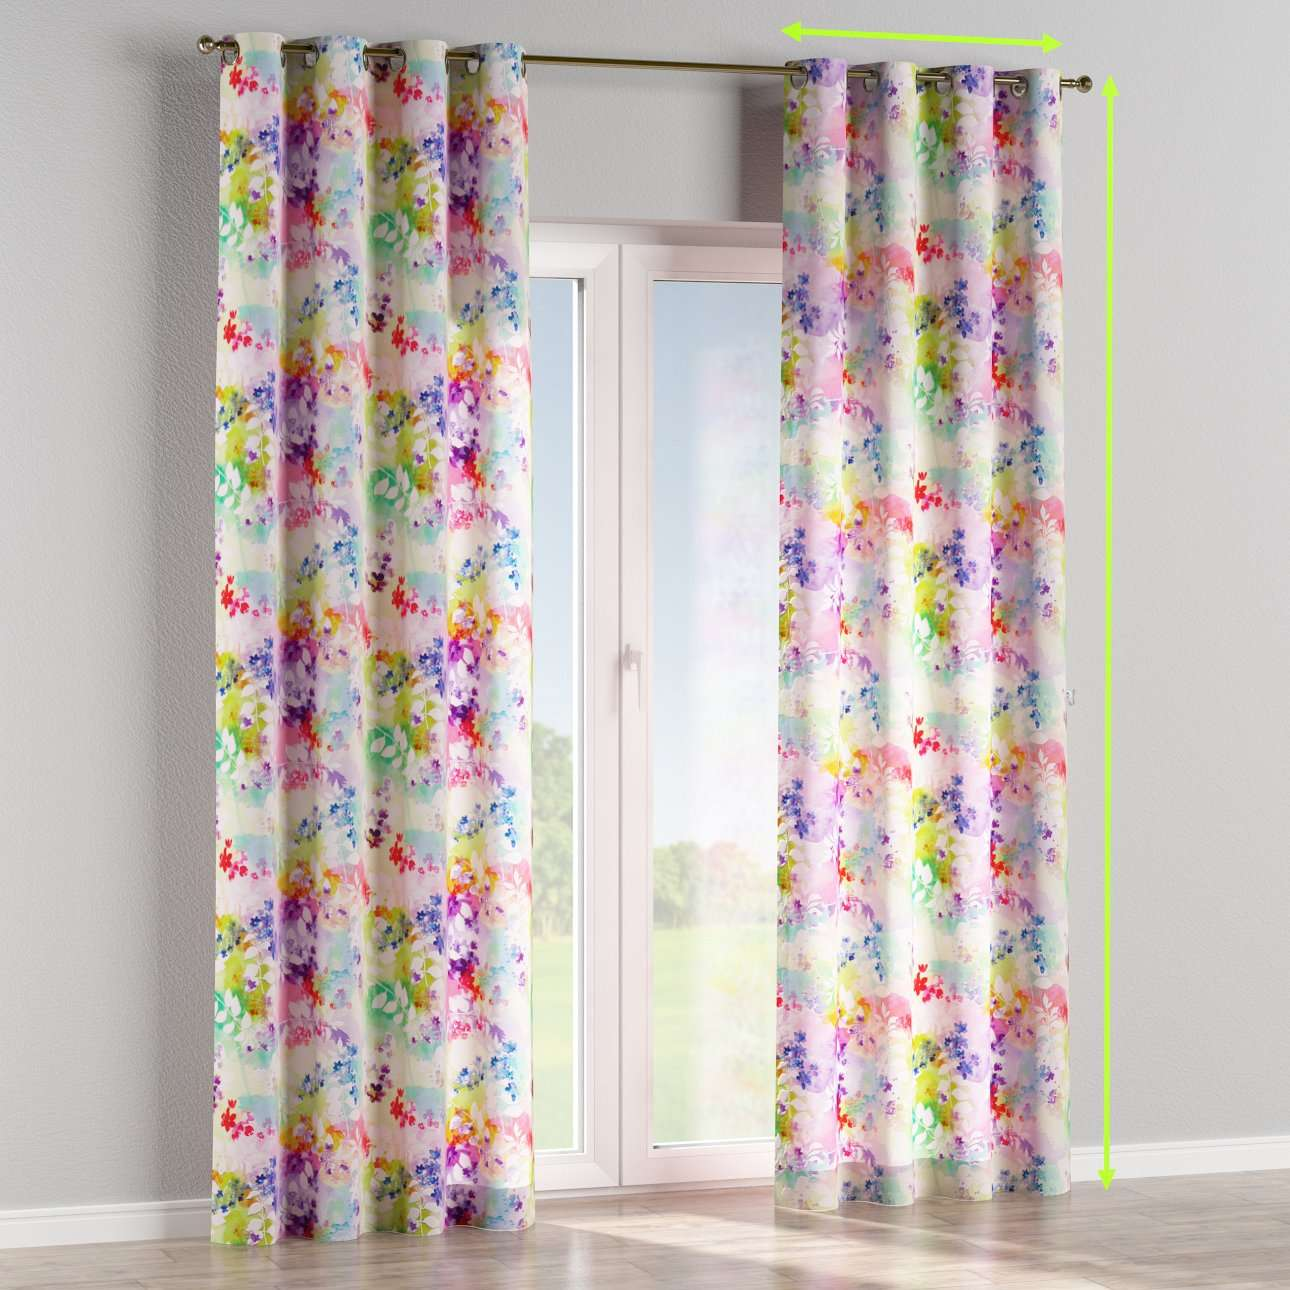 Eyelet lined curtains in collection Monet, fabric: 140-07